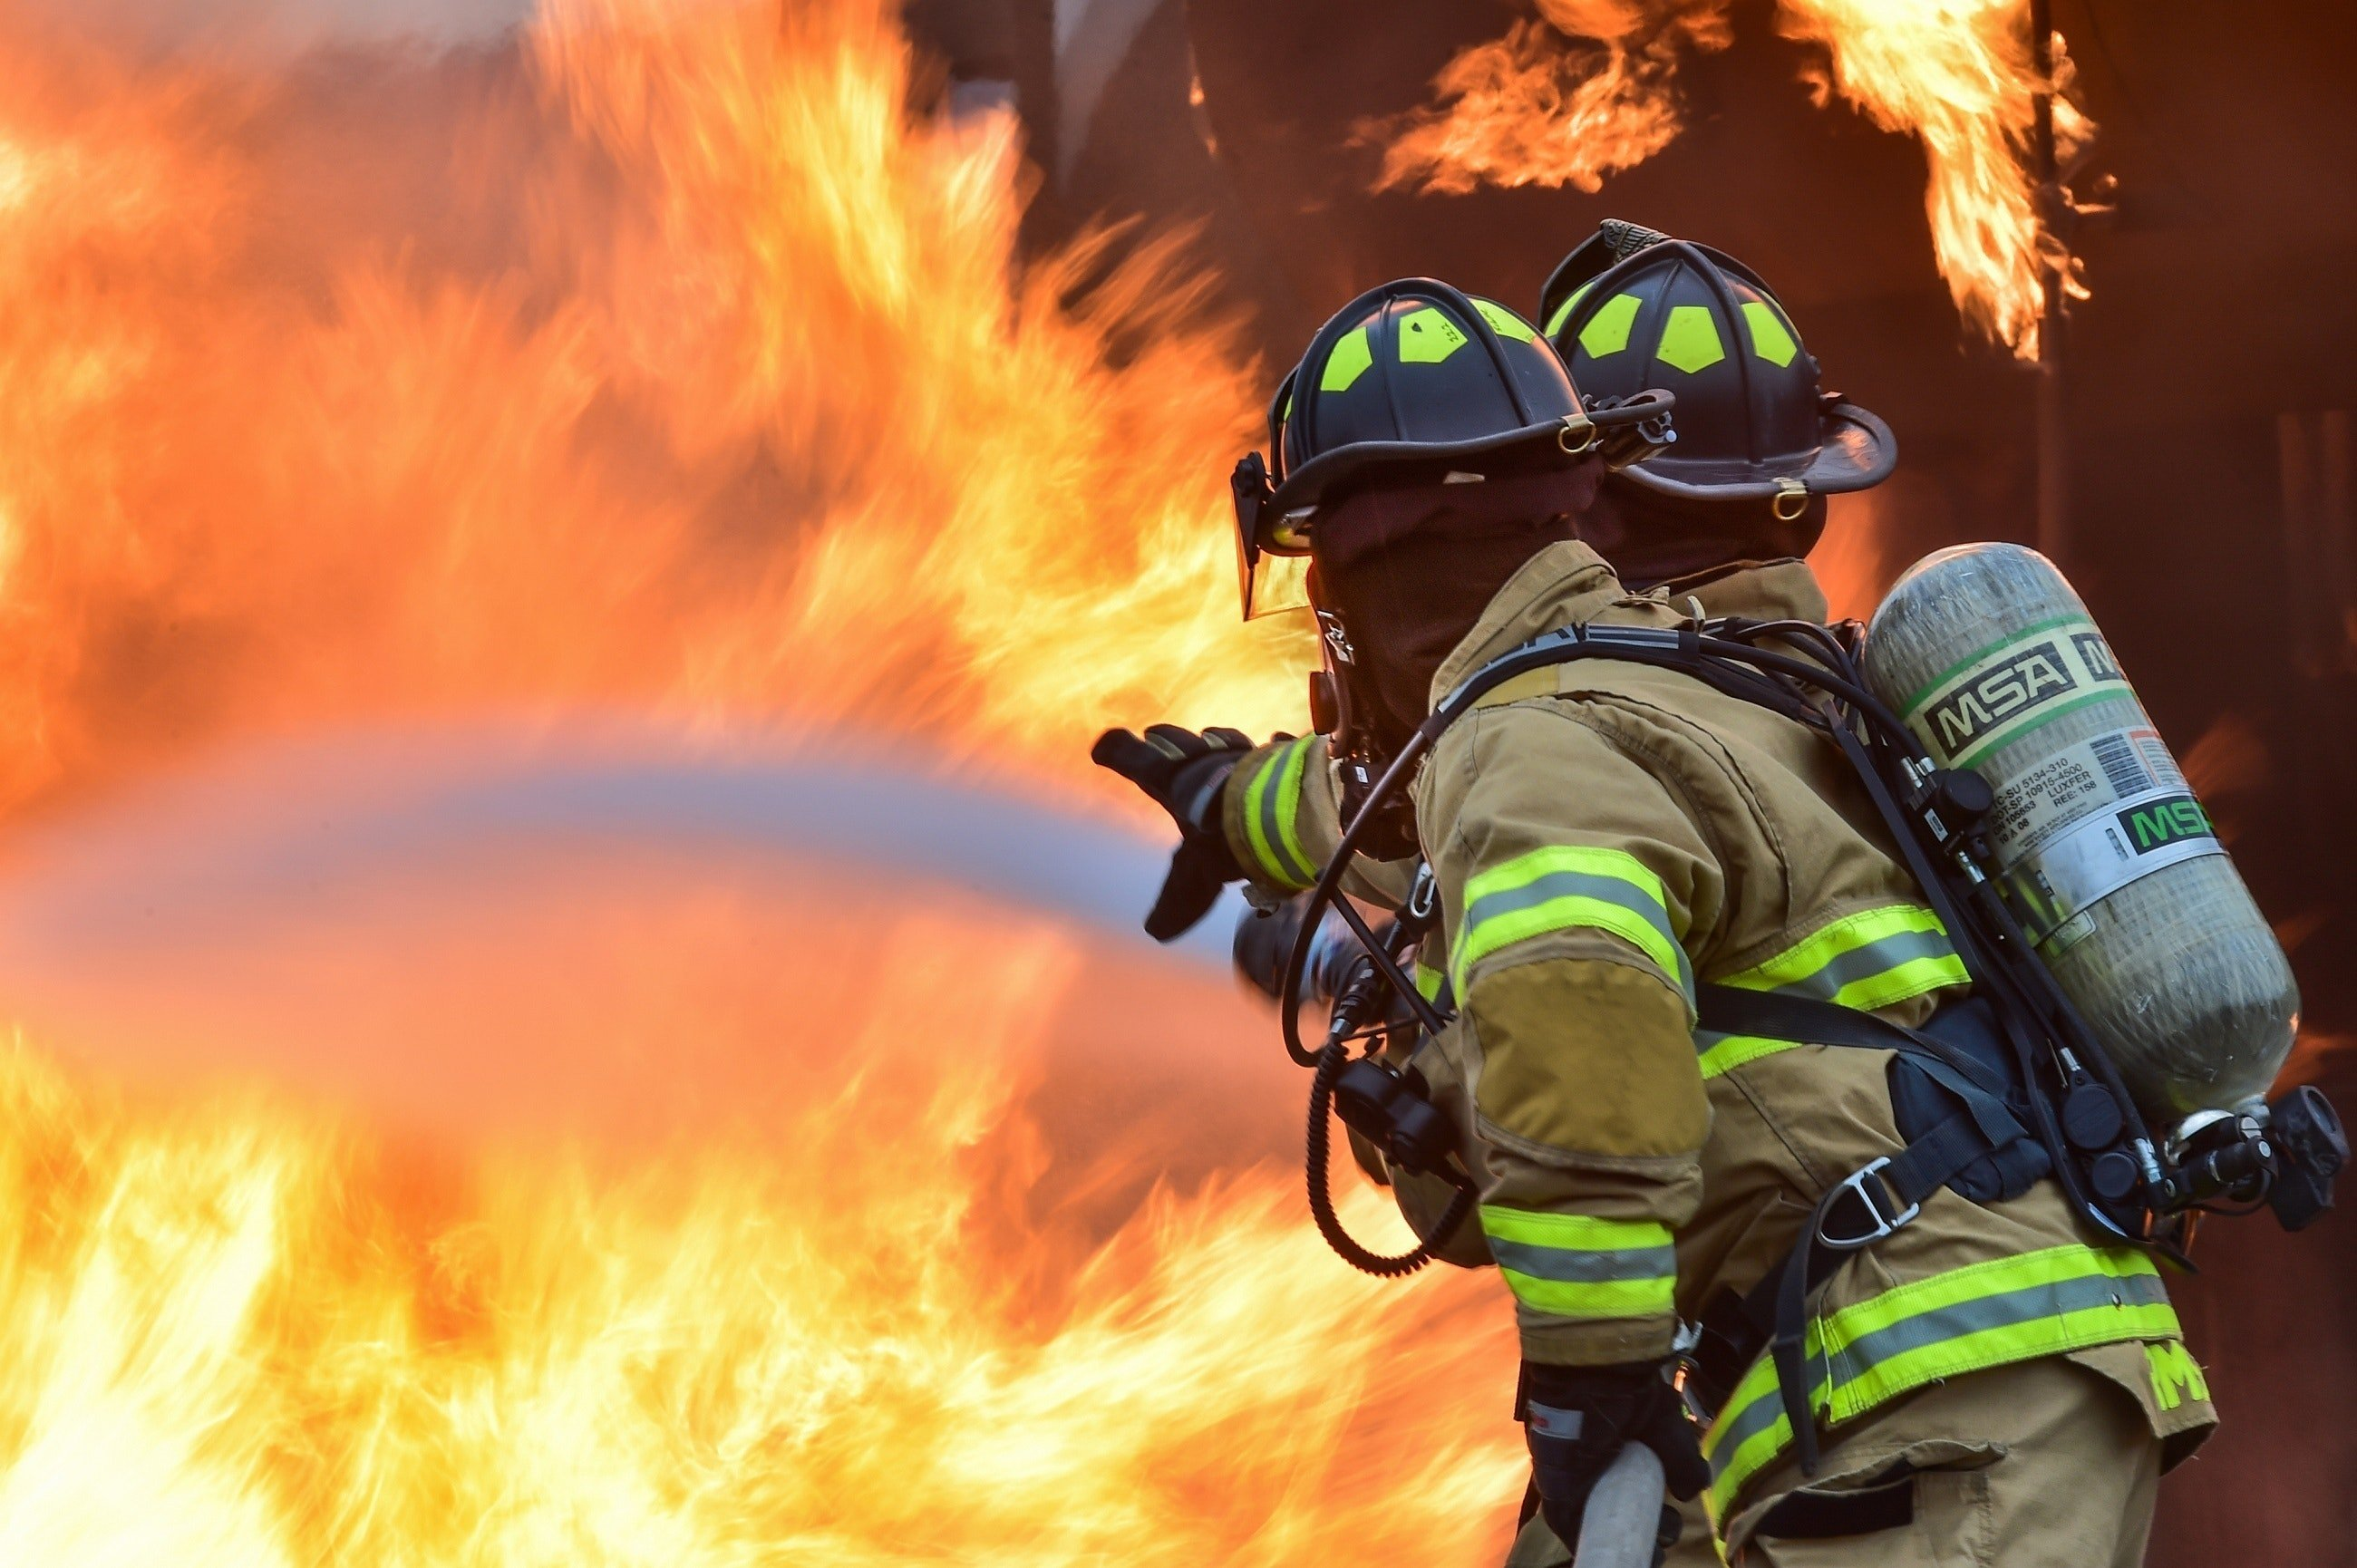 Fire fighters fighting a house fire. | Source: Pexels/ Pixabay